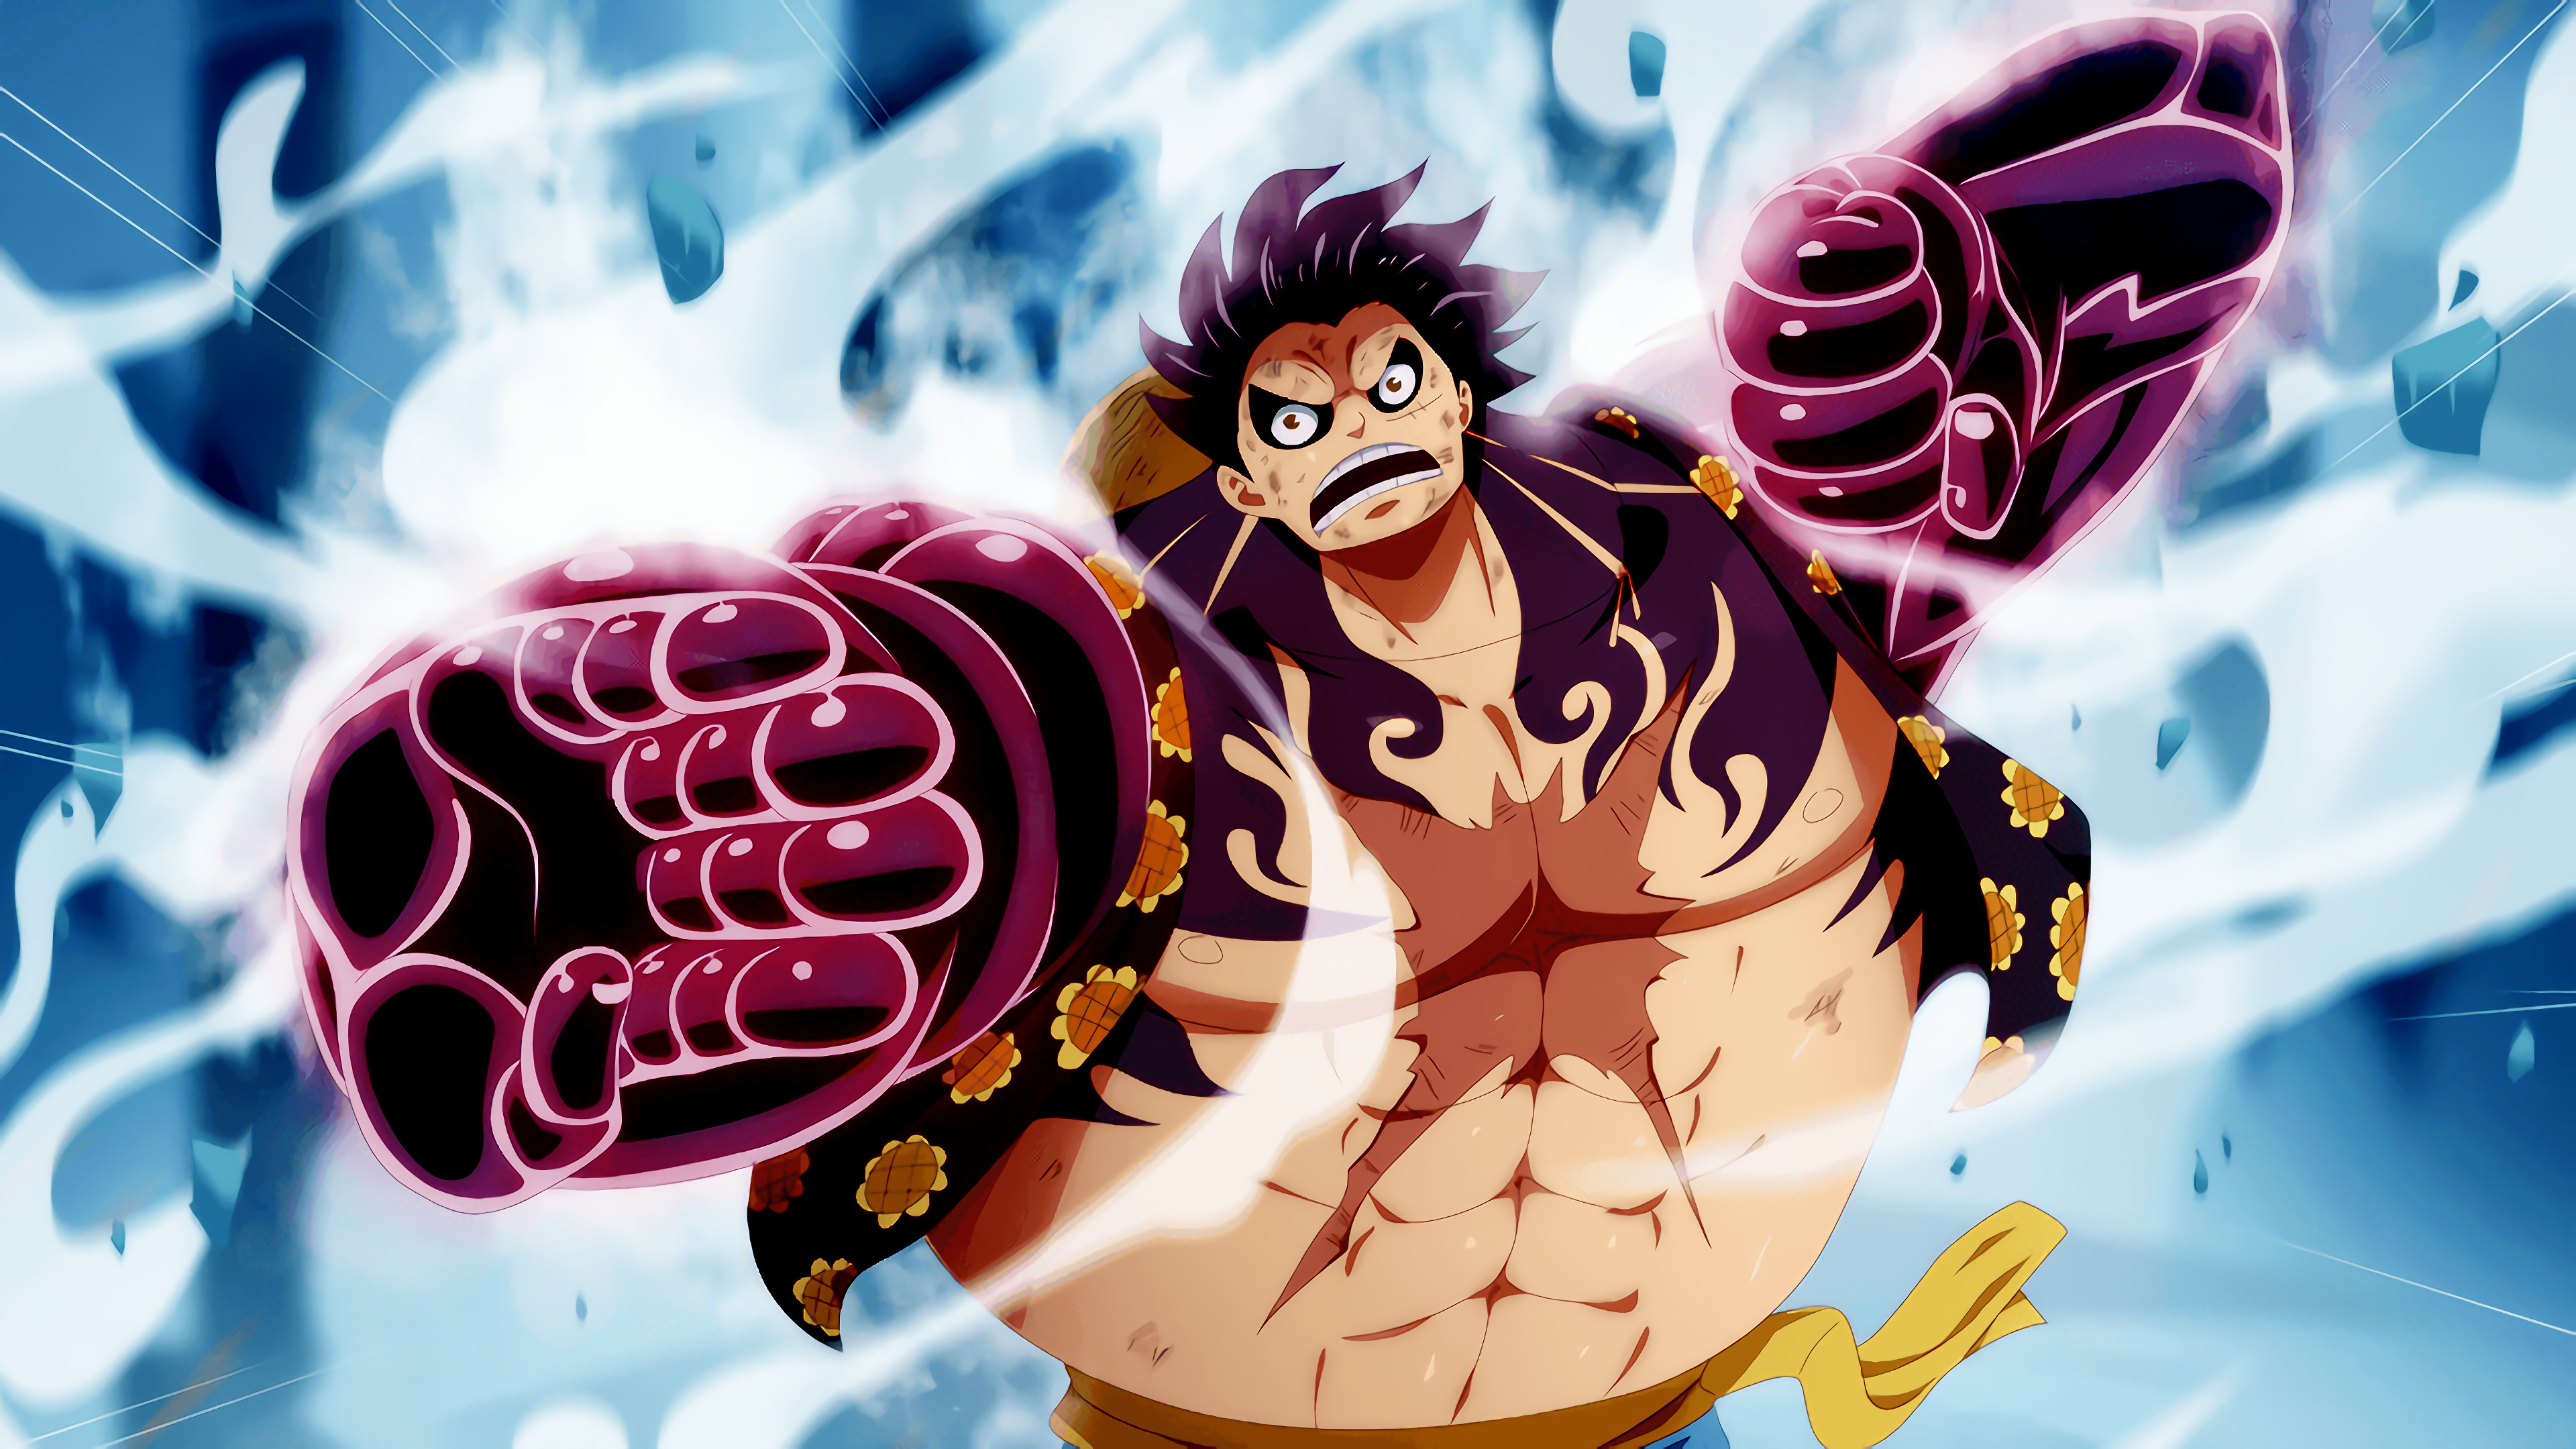 Luffy gear 4 wallpapers (75+ background pictures). Monkey D Luffy 4k 8k Hd One Piece Wallpaper